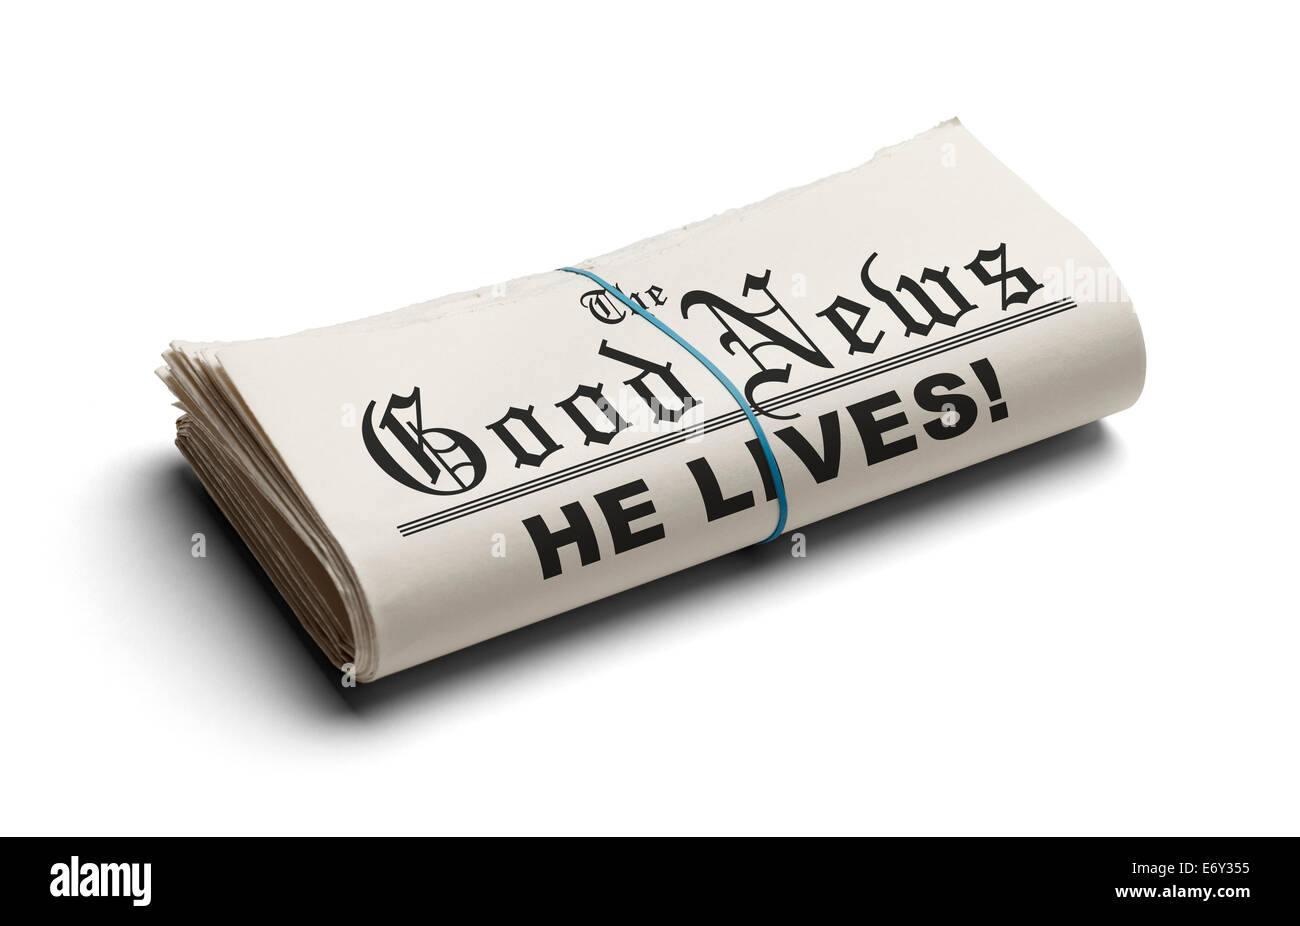 Newspaper With The Good News and the Headline He Lives printed on it Isolated On White Background. - Stock Image